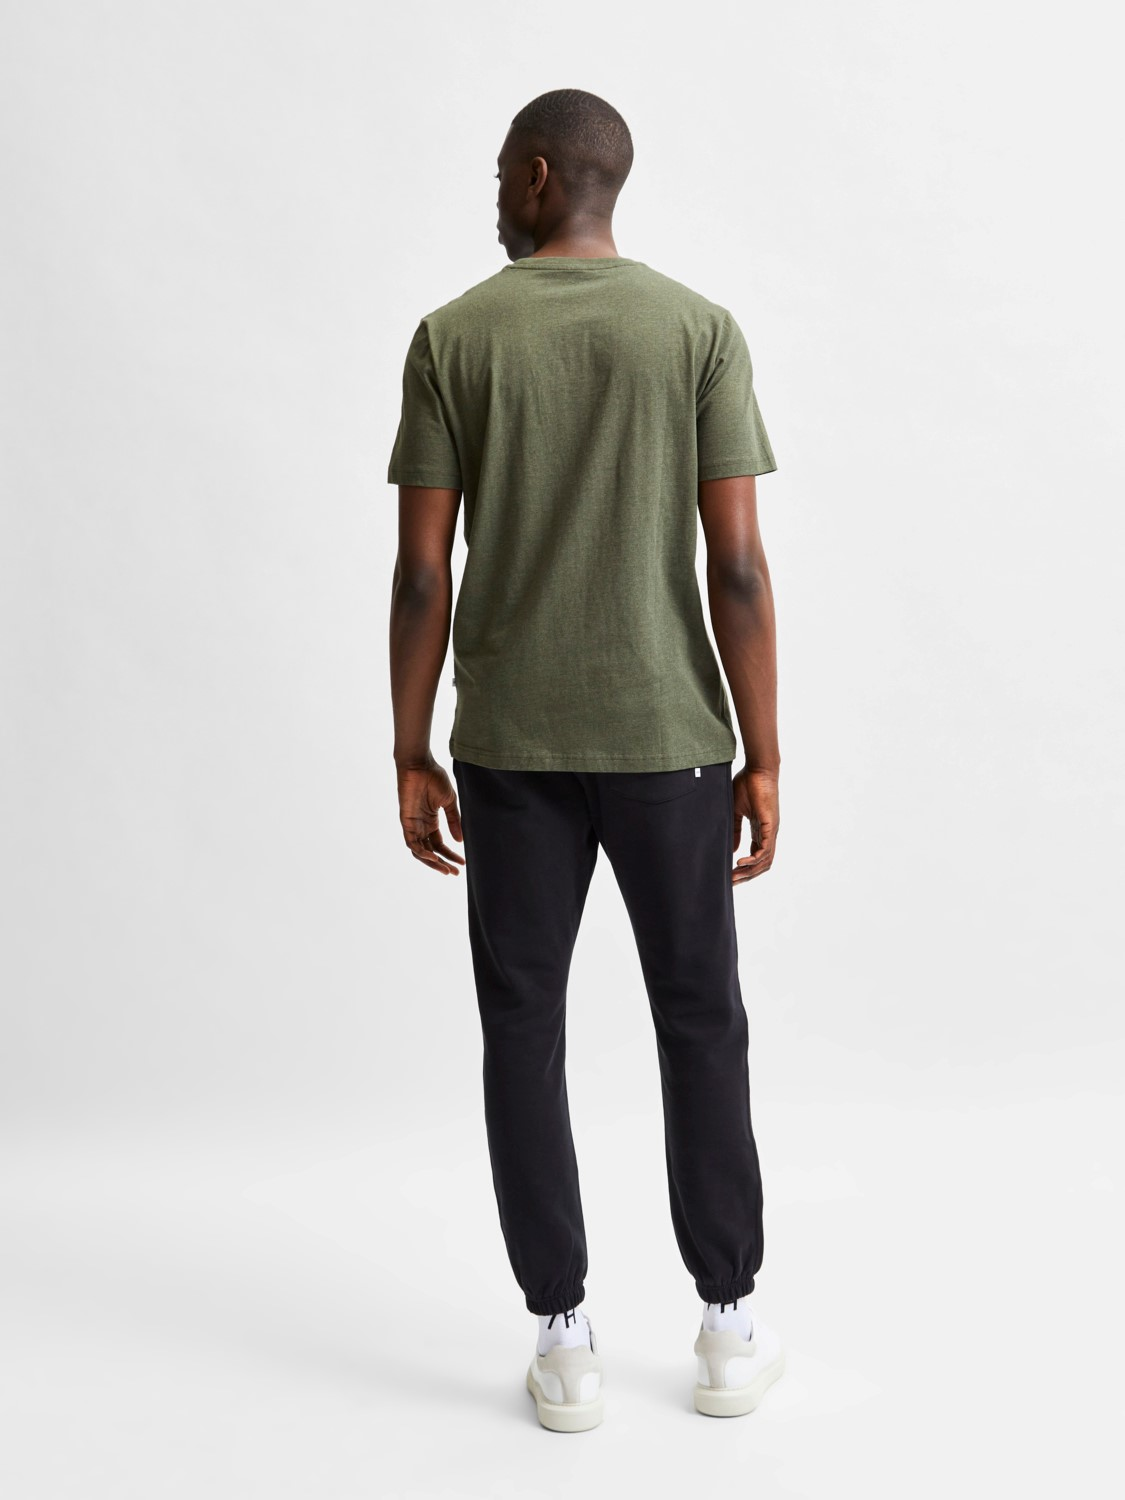 Selected - T-shirt O-neck forest night | Gate36 Hobro